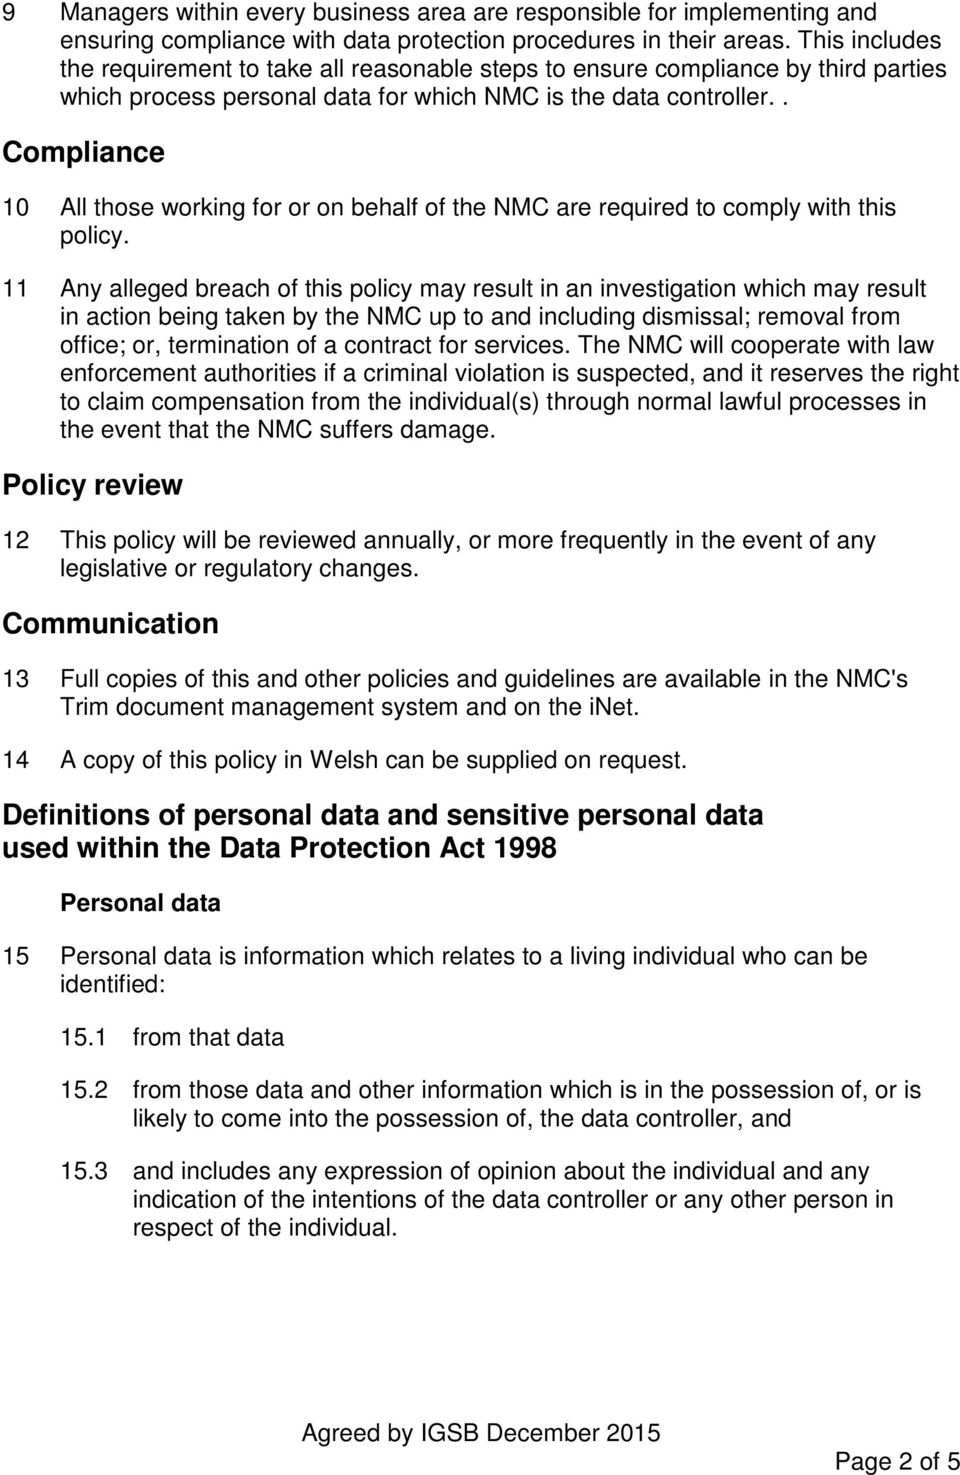 . Compliance 10 All those working for or on behalf of the NMC are required to comply with this policy.